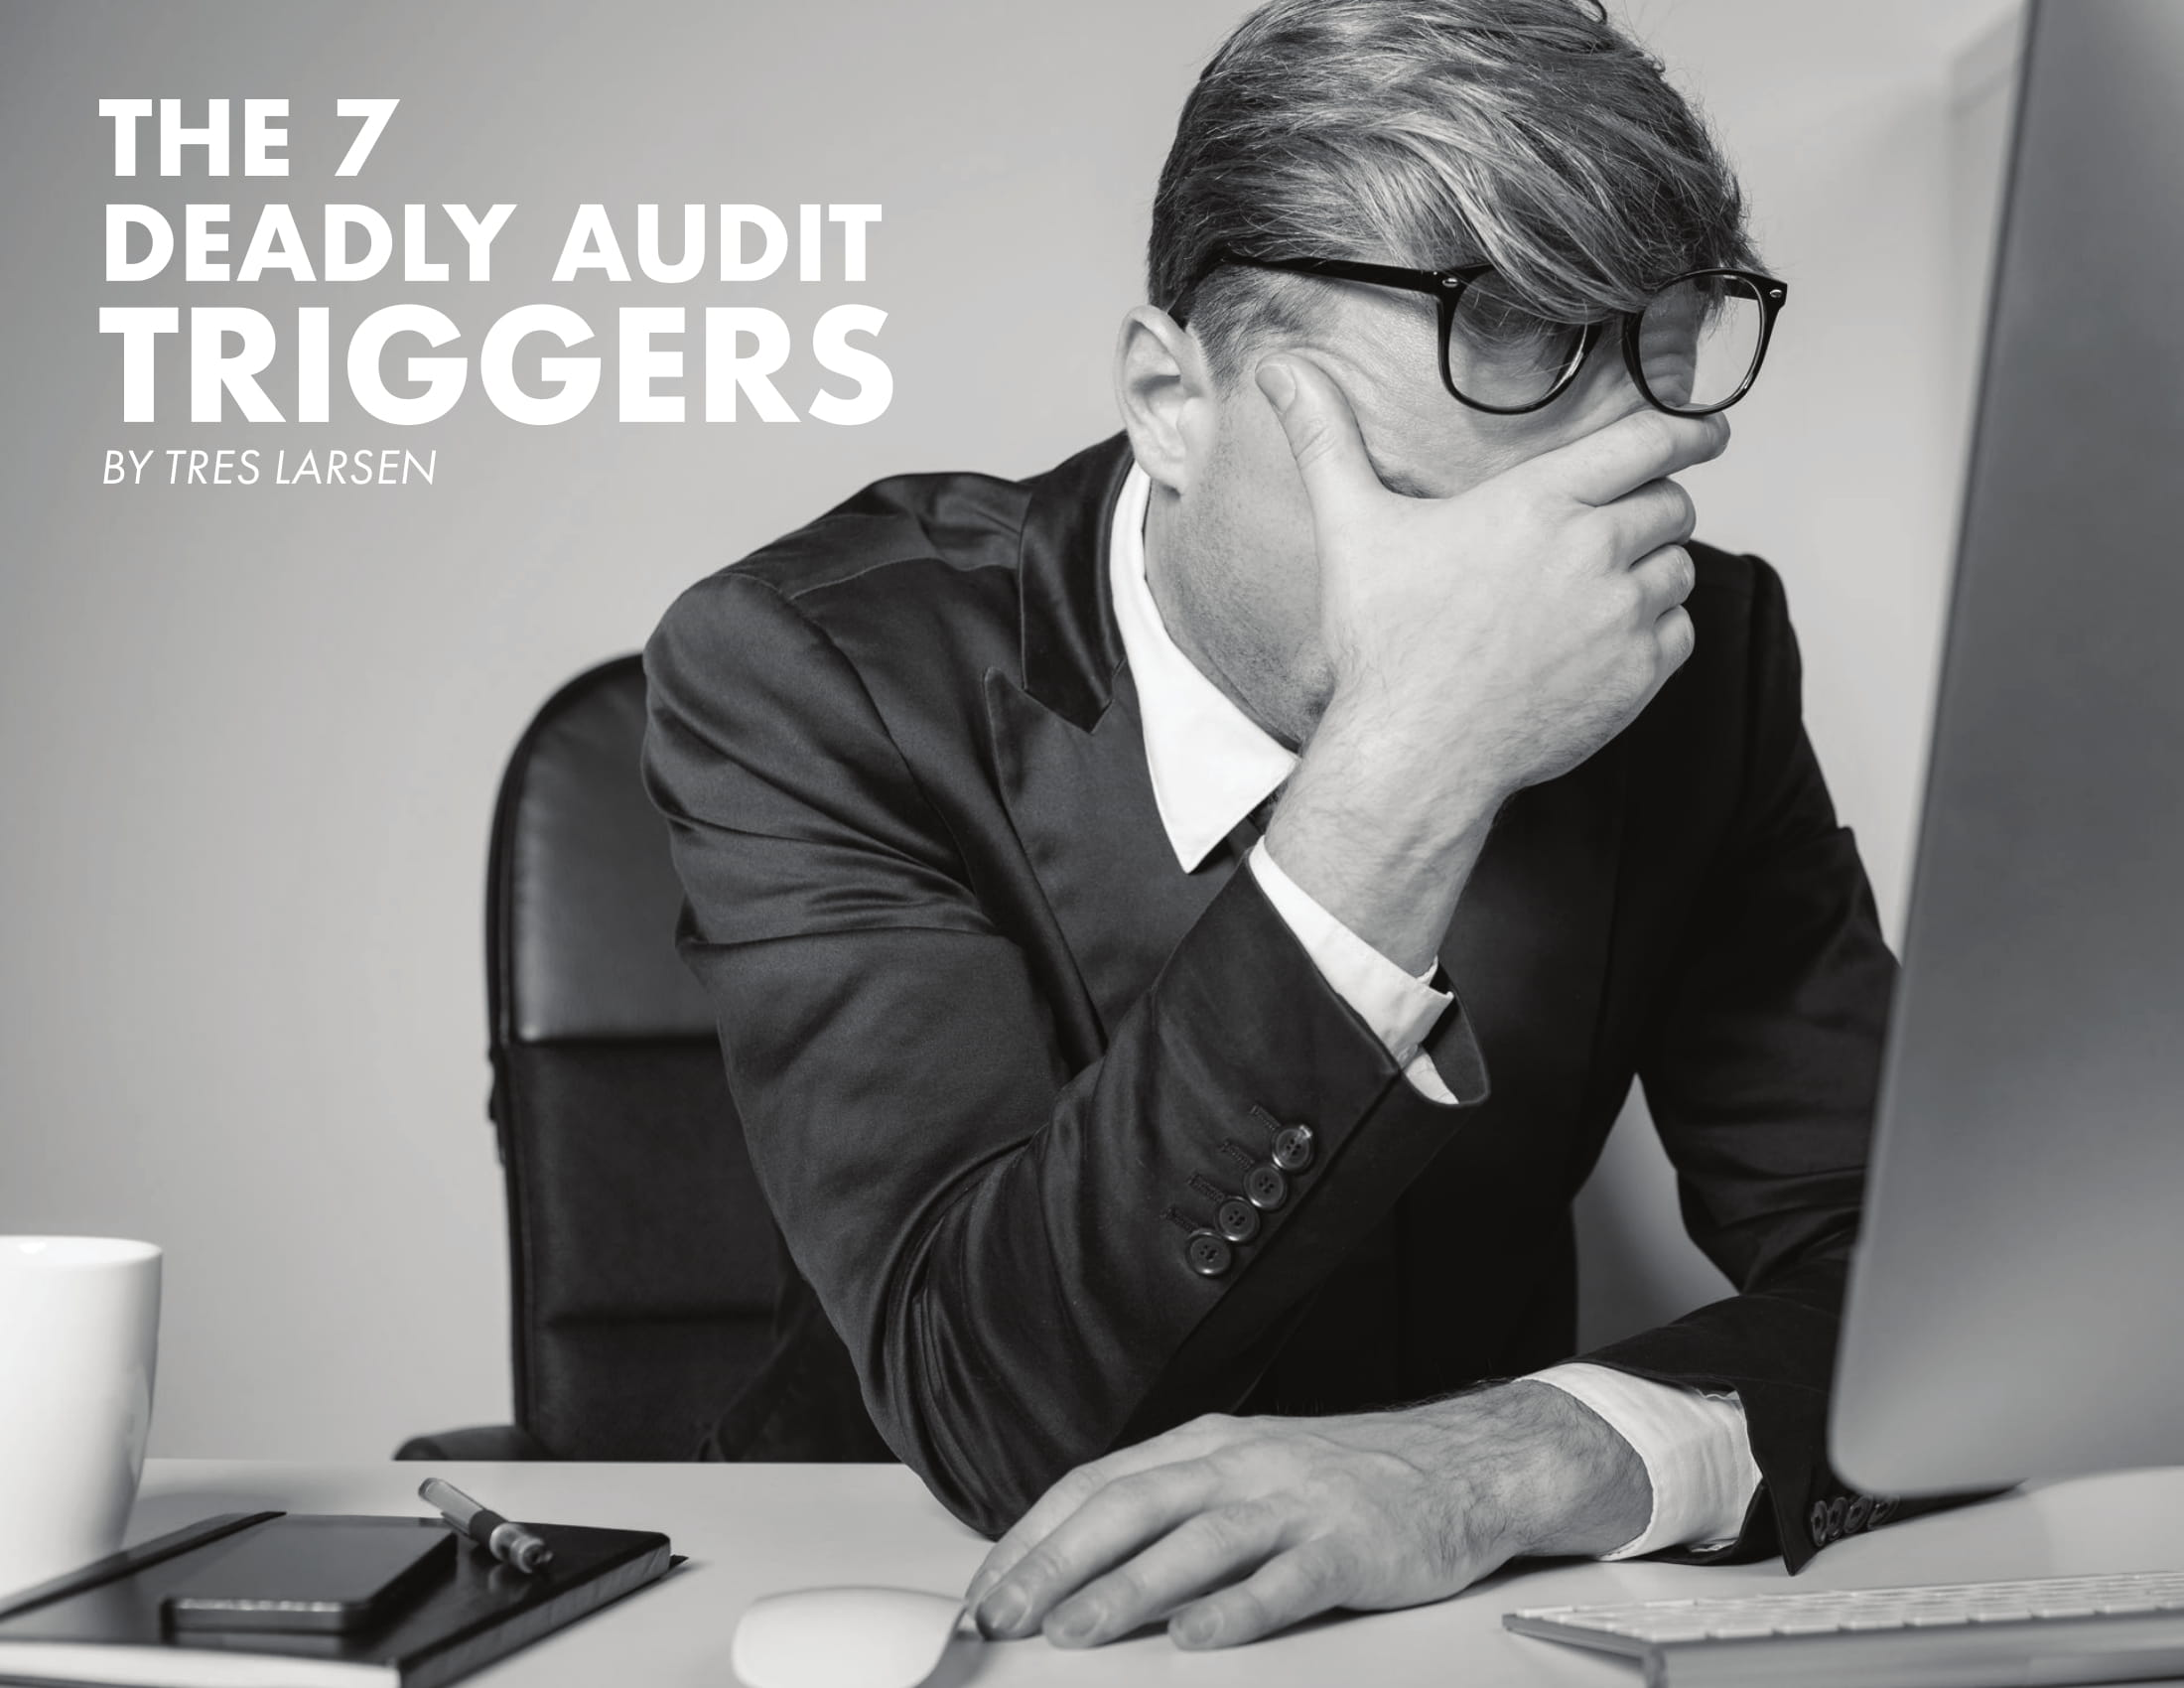 Deadly Audit Triggers